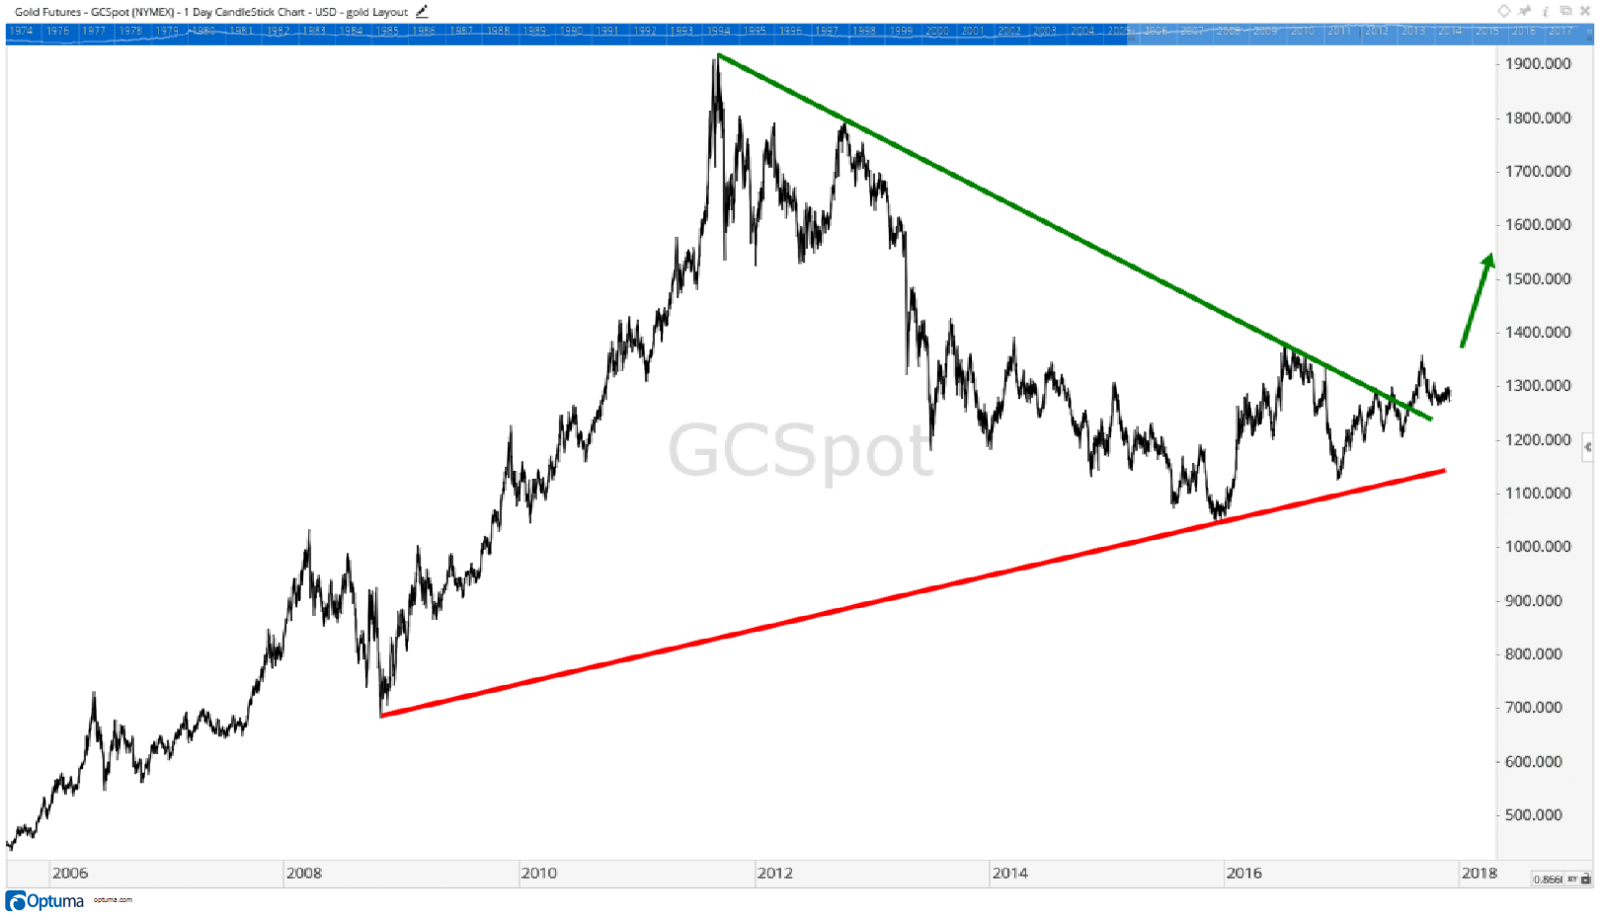 After Gold Prices Broke Above The Green Downward Sloping Trend Line It Indicated Entered A New One That Is Heading Higher